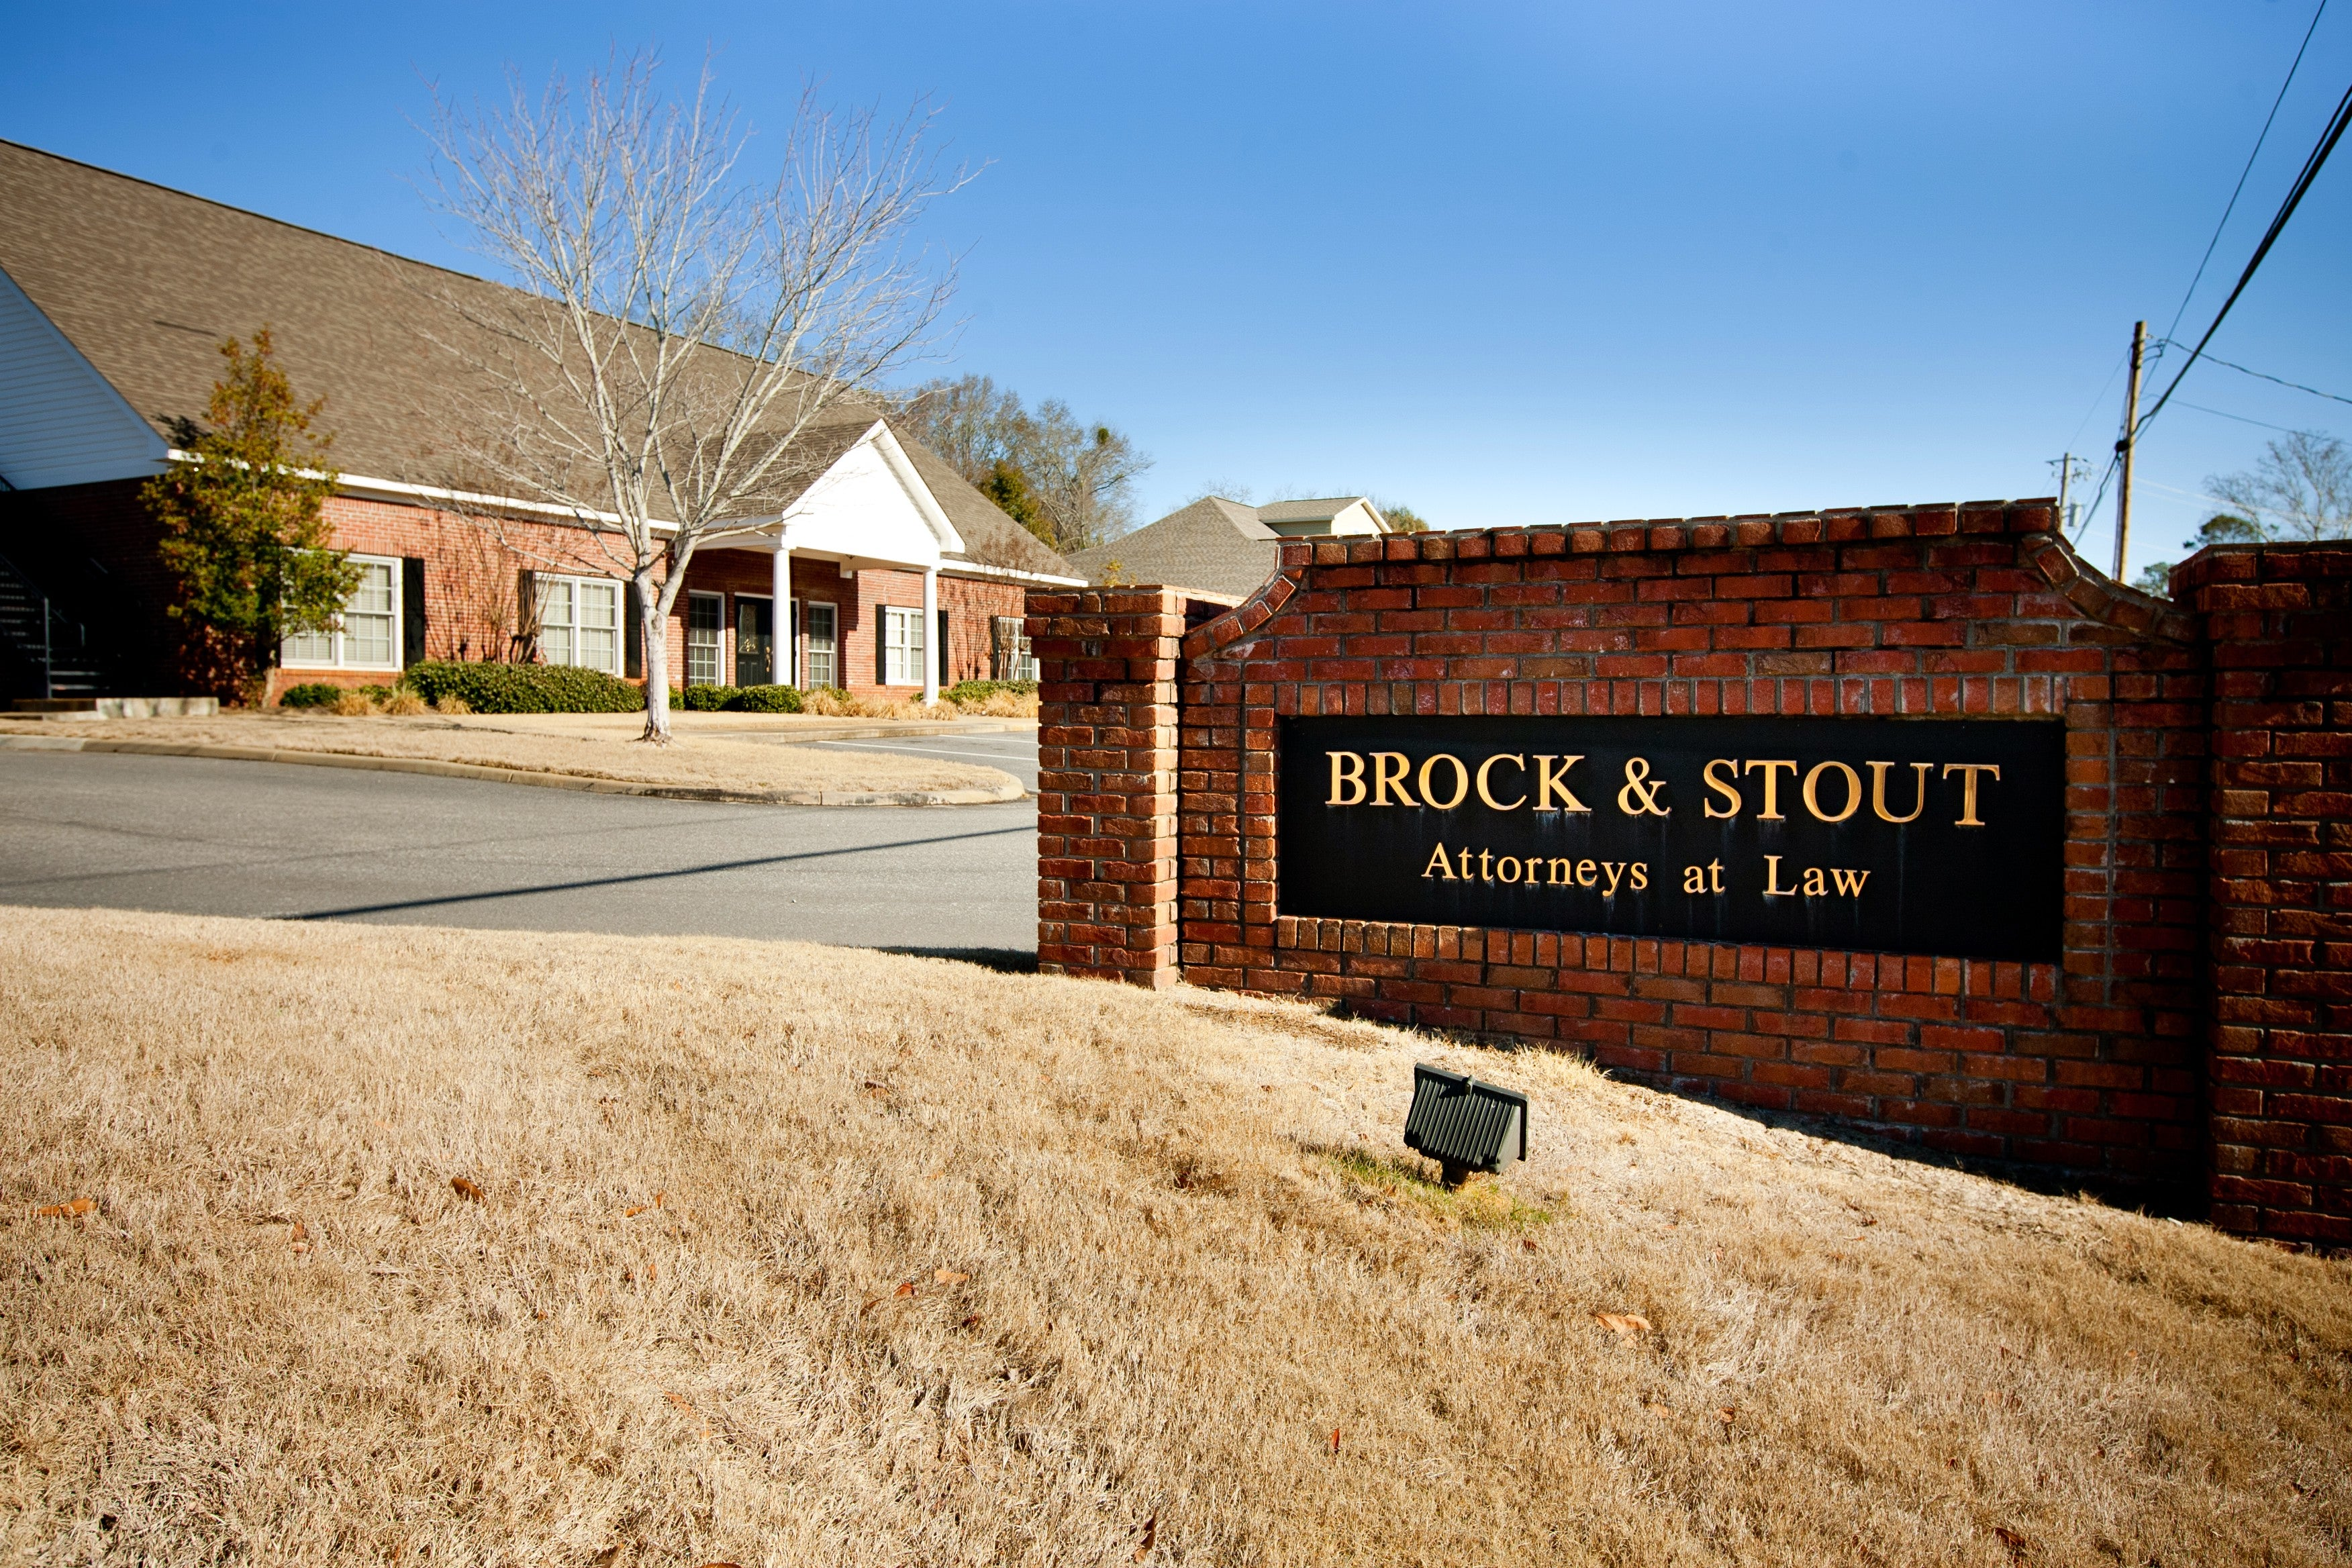 BROCK & STOUT ATTORNEYS AT LAW,